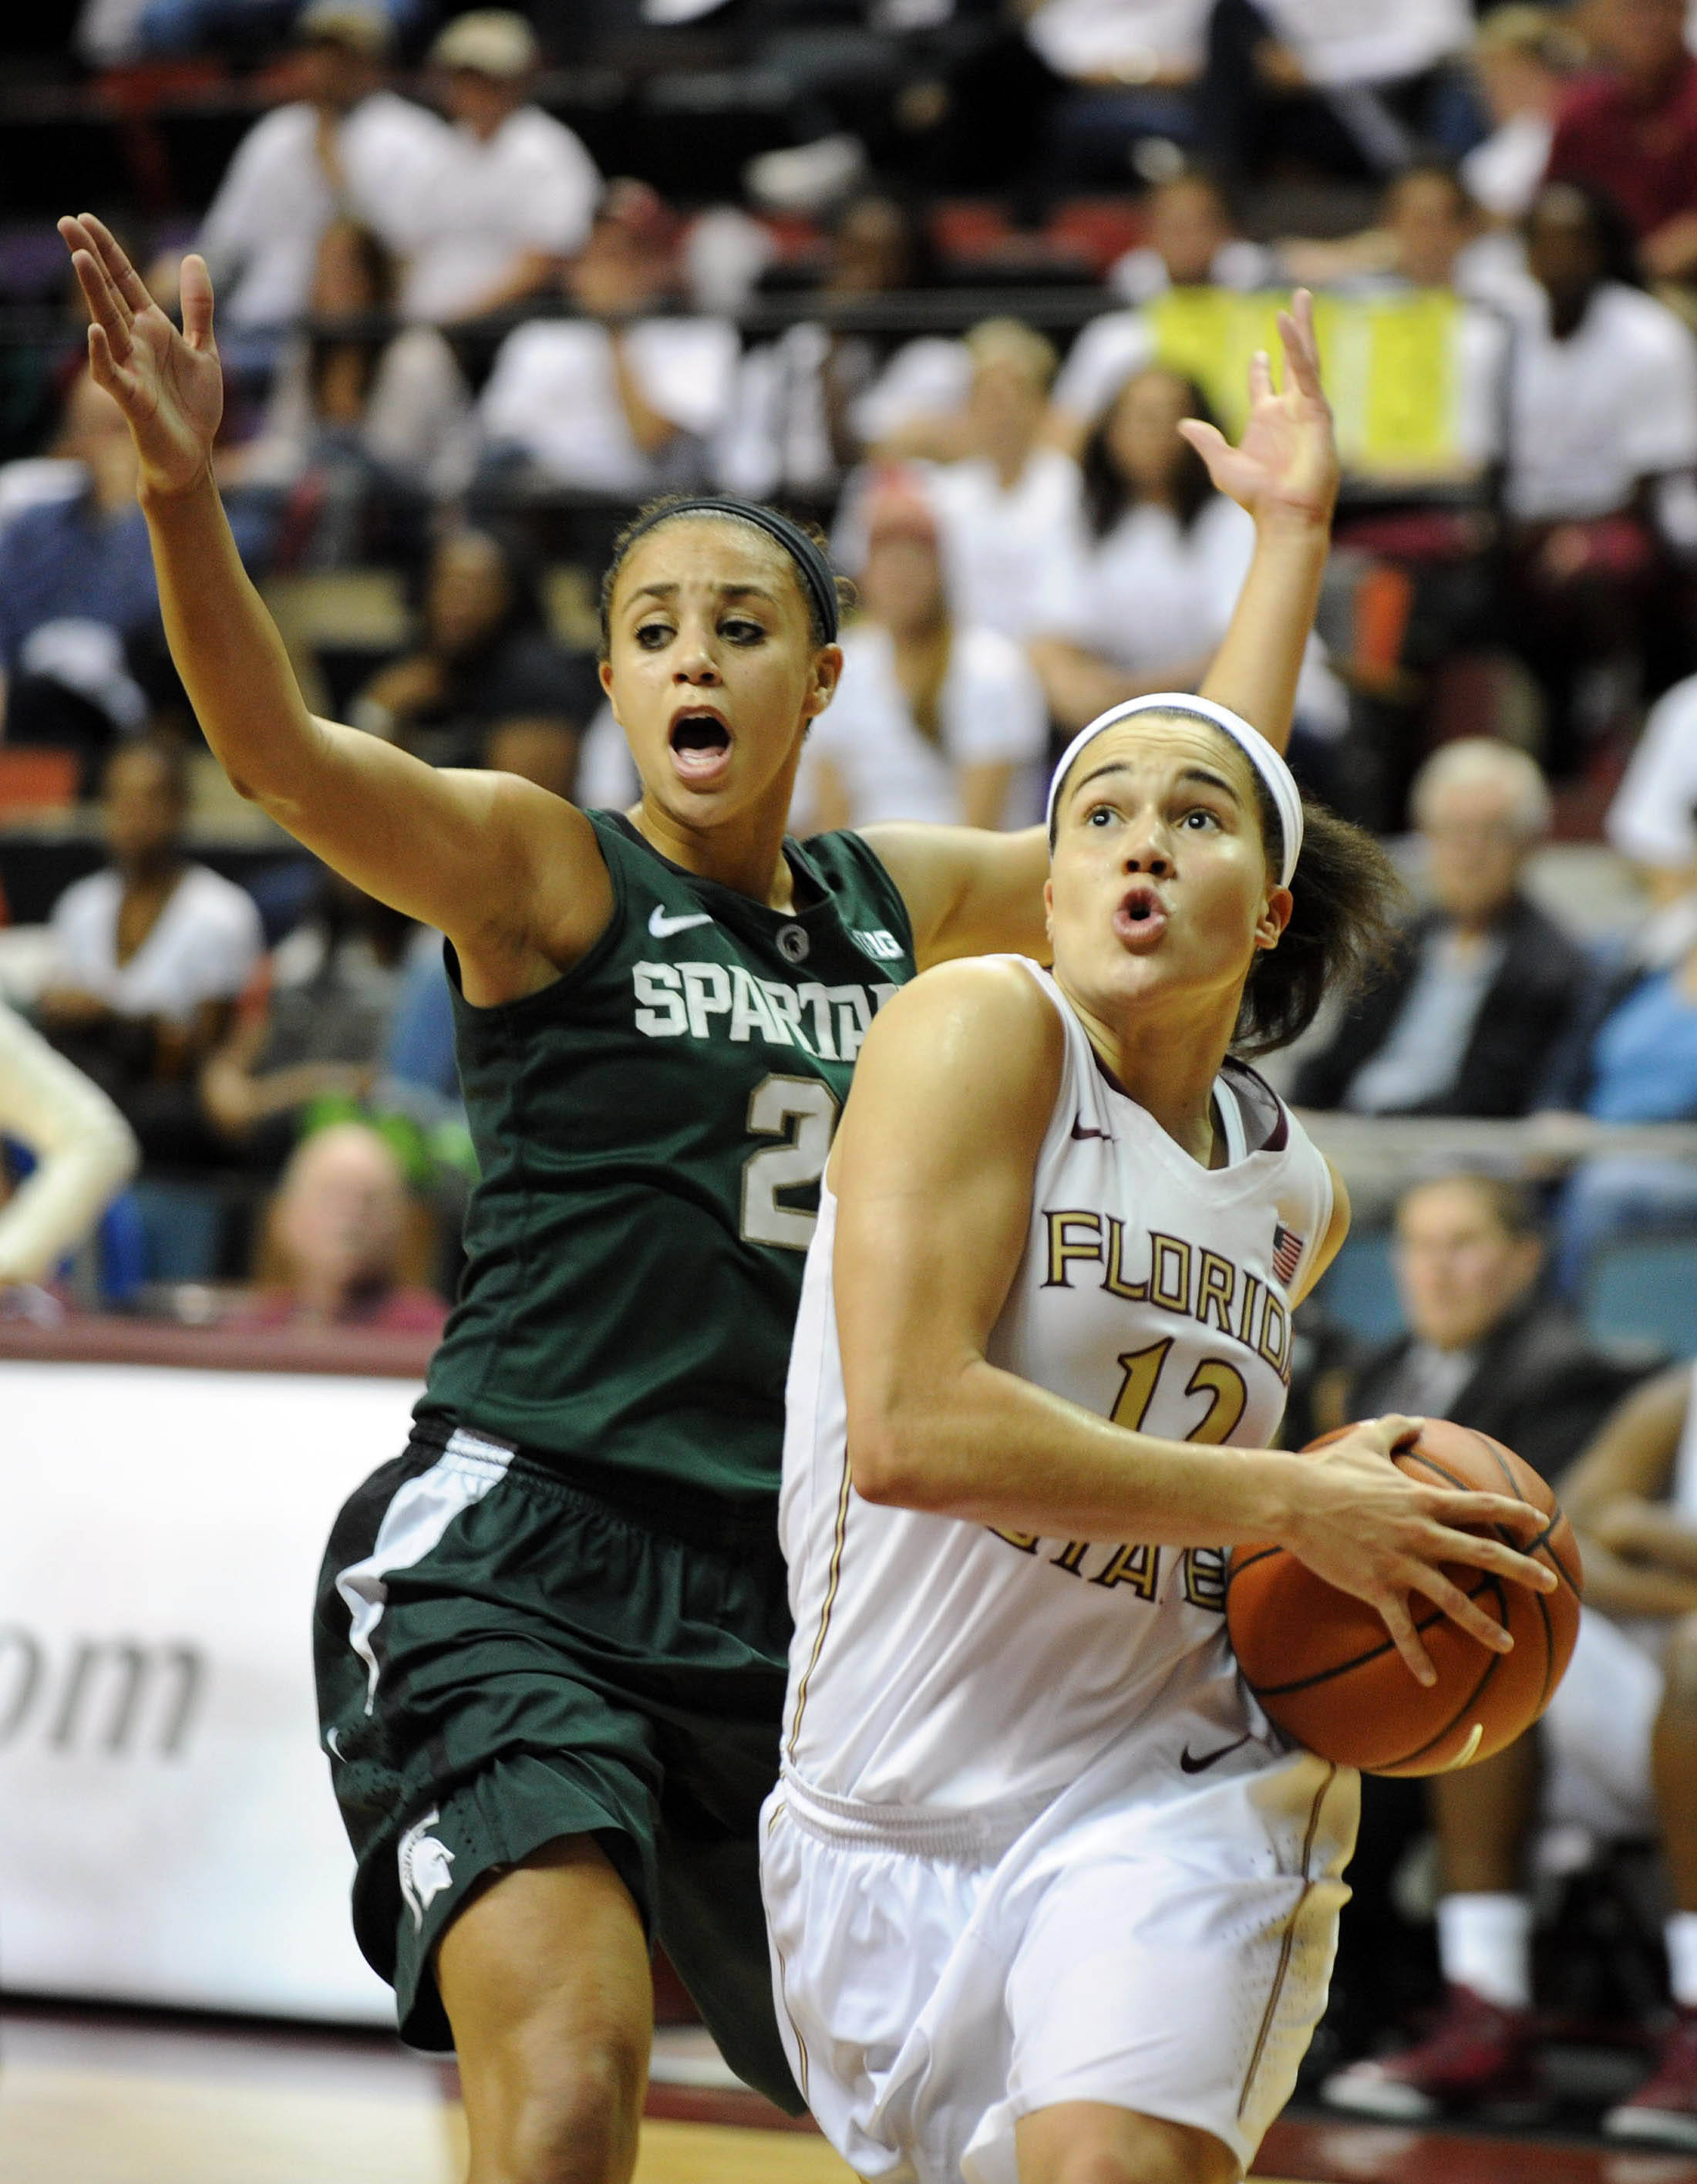 Dec 4, 2013; Tallahassee, FL, USA; Michigan State guard Klarissa Bell (21) tries to defend Florida State Seminoles guard Brittany Brown (12) during the game at the Donald L. Tucker Center (Tallahassee). Mandatory Credit: Melina Vastola-USA TODAY Sports